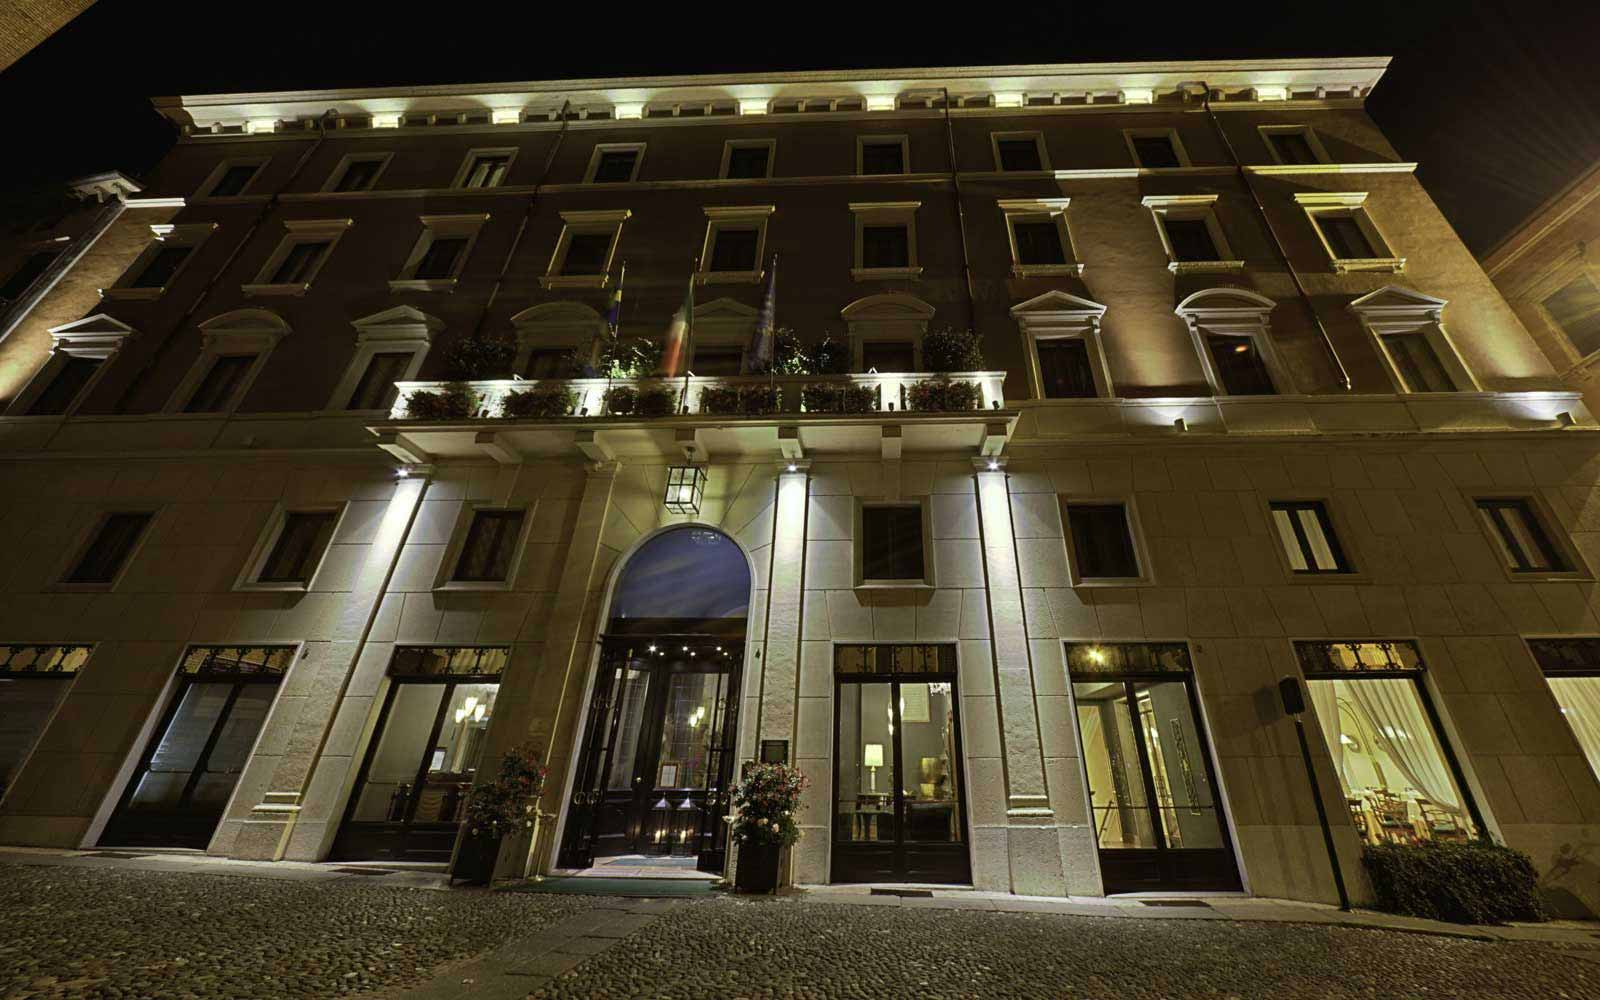 Due Torri Hotel by night